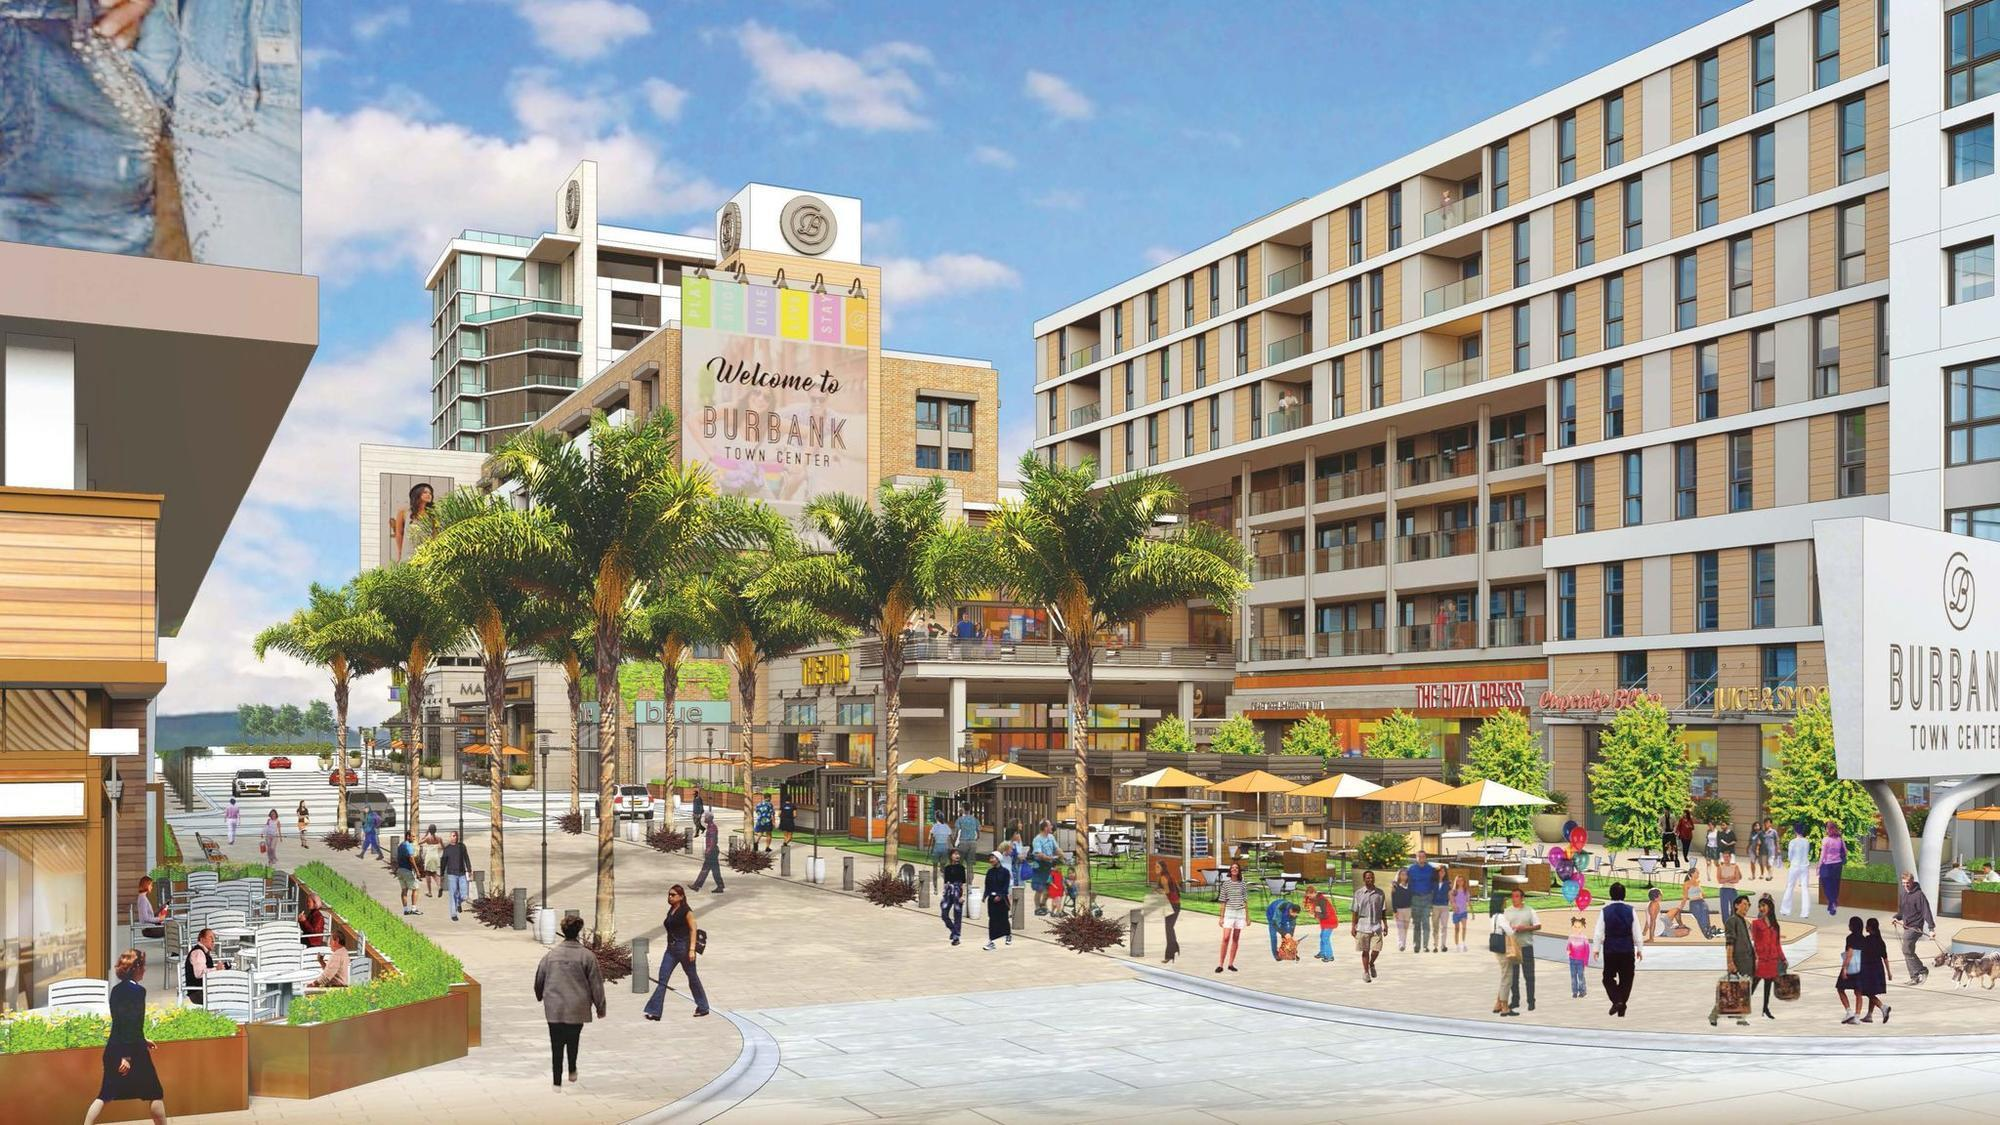 Apartments replacing an old Ikea in Burbank? Some see it as an answer to the housing crunch